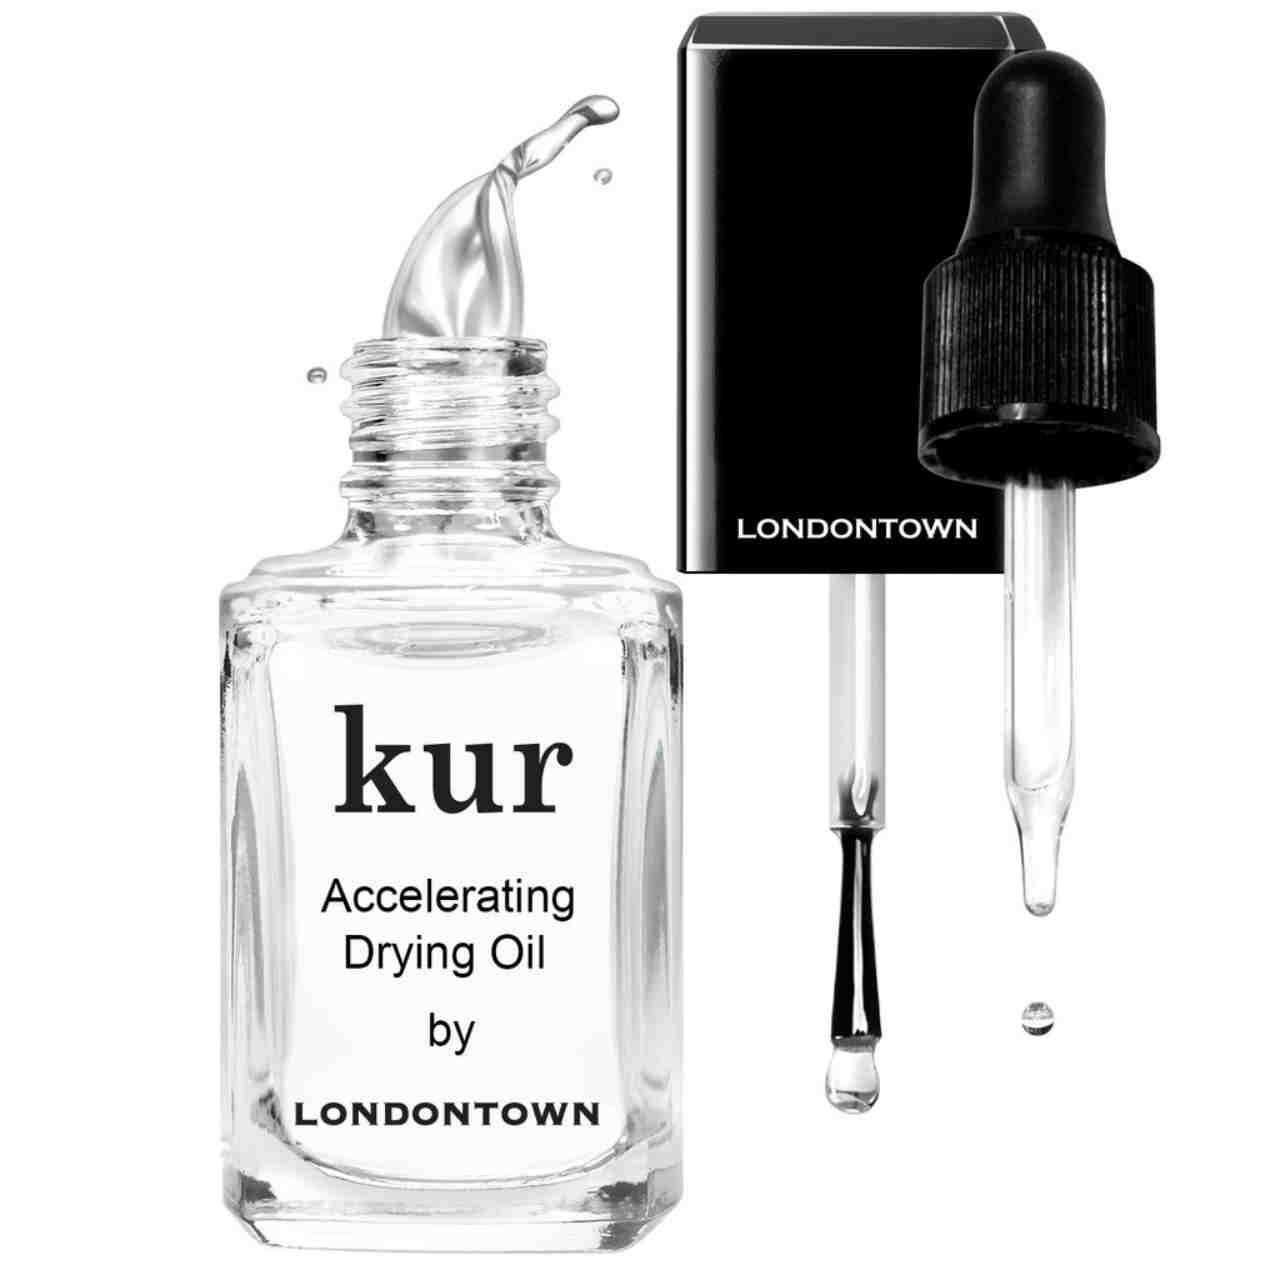 LONDONTOWN Kur Accelerating Drying Oil with black cap